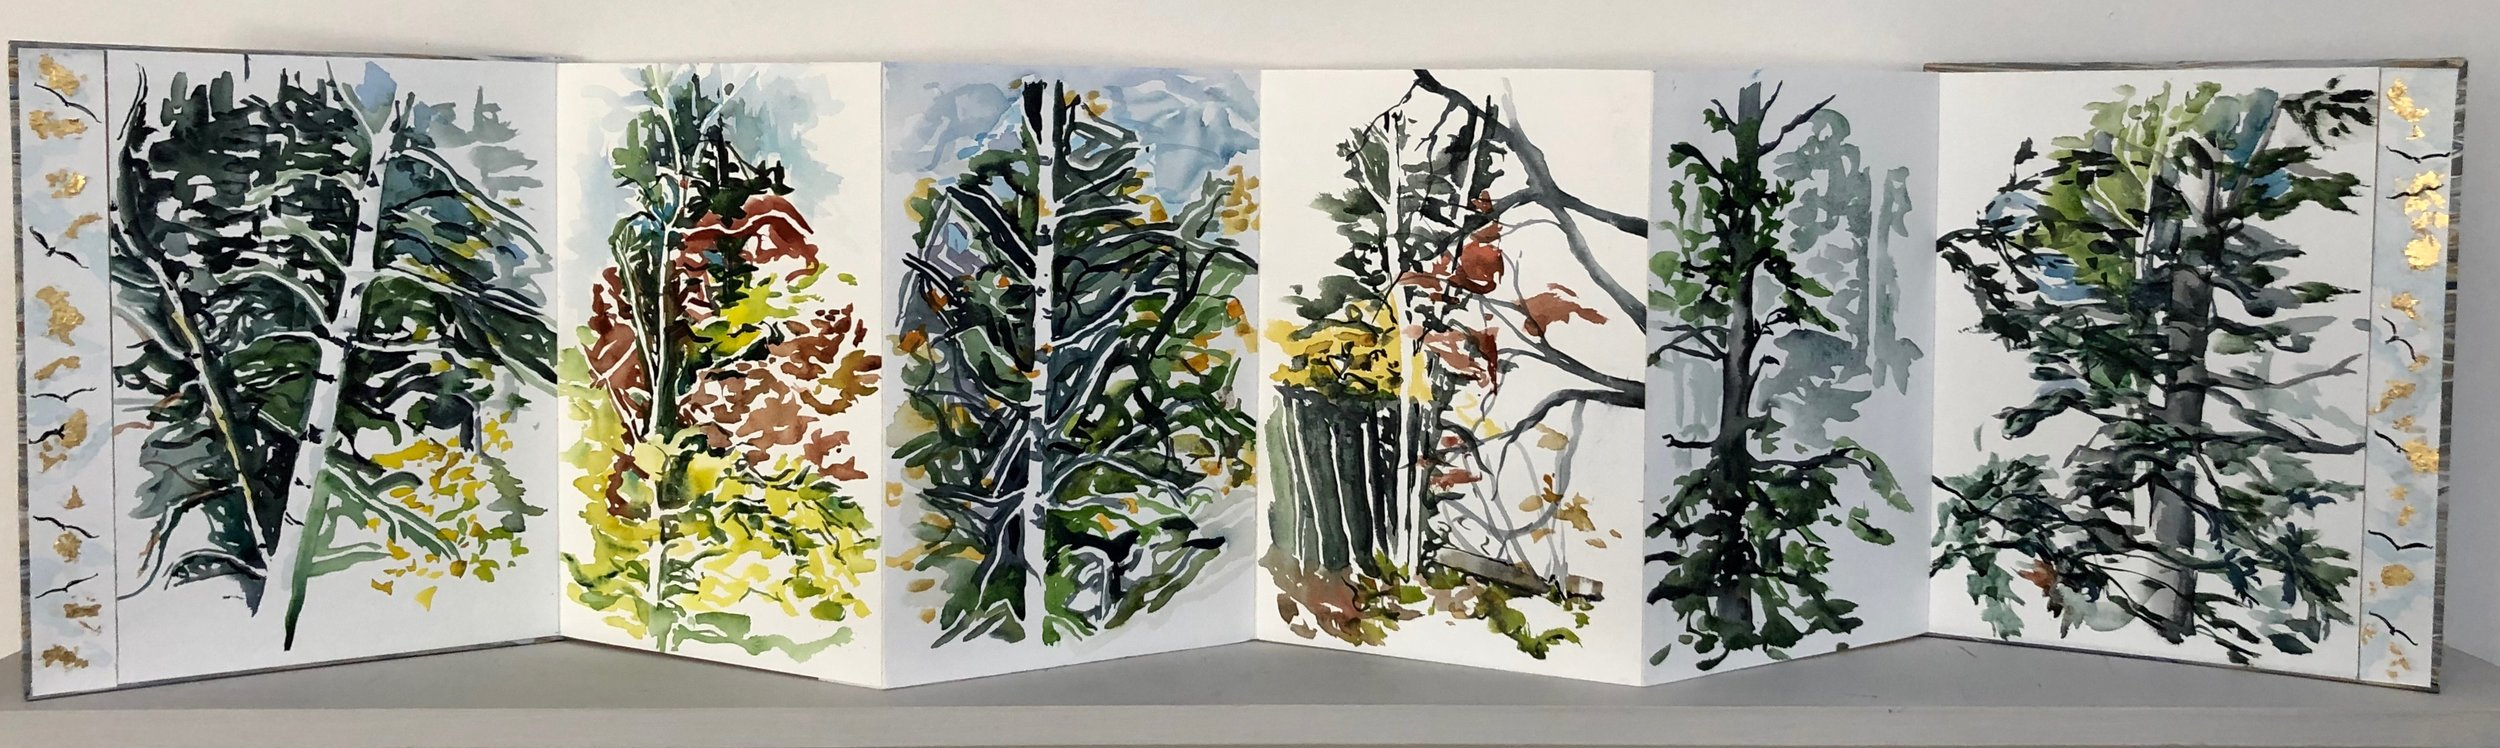 """Through the Windows.  Large format book: Watercolor, Ink, cut paper on BFK Rives watercolor paper. 11""""x9"""" closed. 11'""""x40"""" open."""